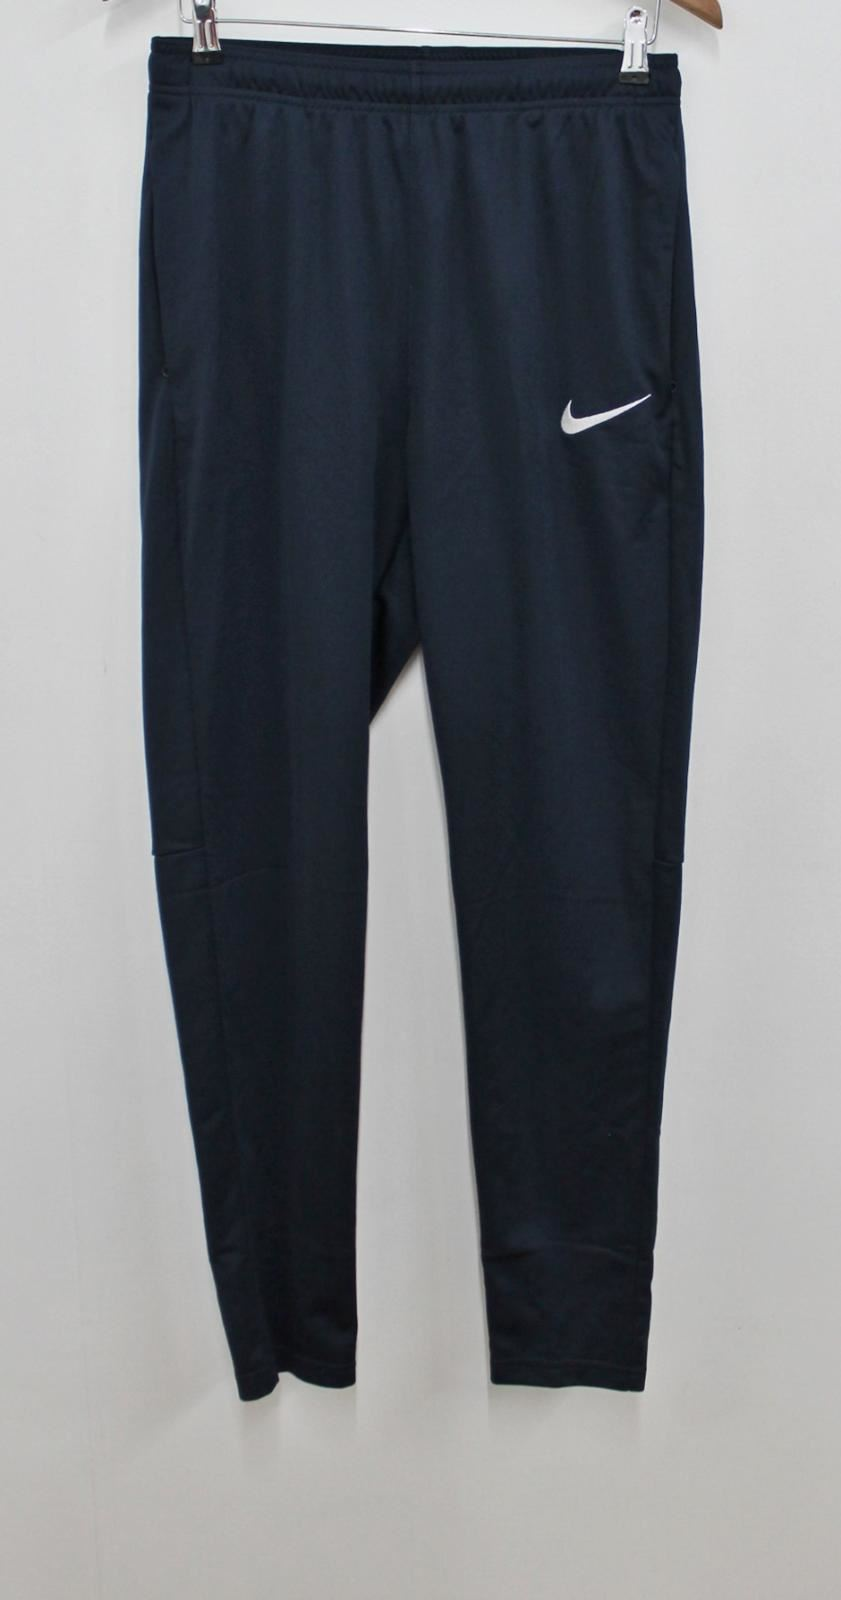 7be72972a694e NIKE Men's Dri-Fit Navy bluee Slim Fit High Waisted Sport Running Trousers M